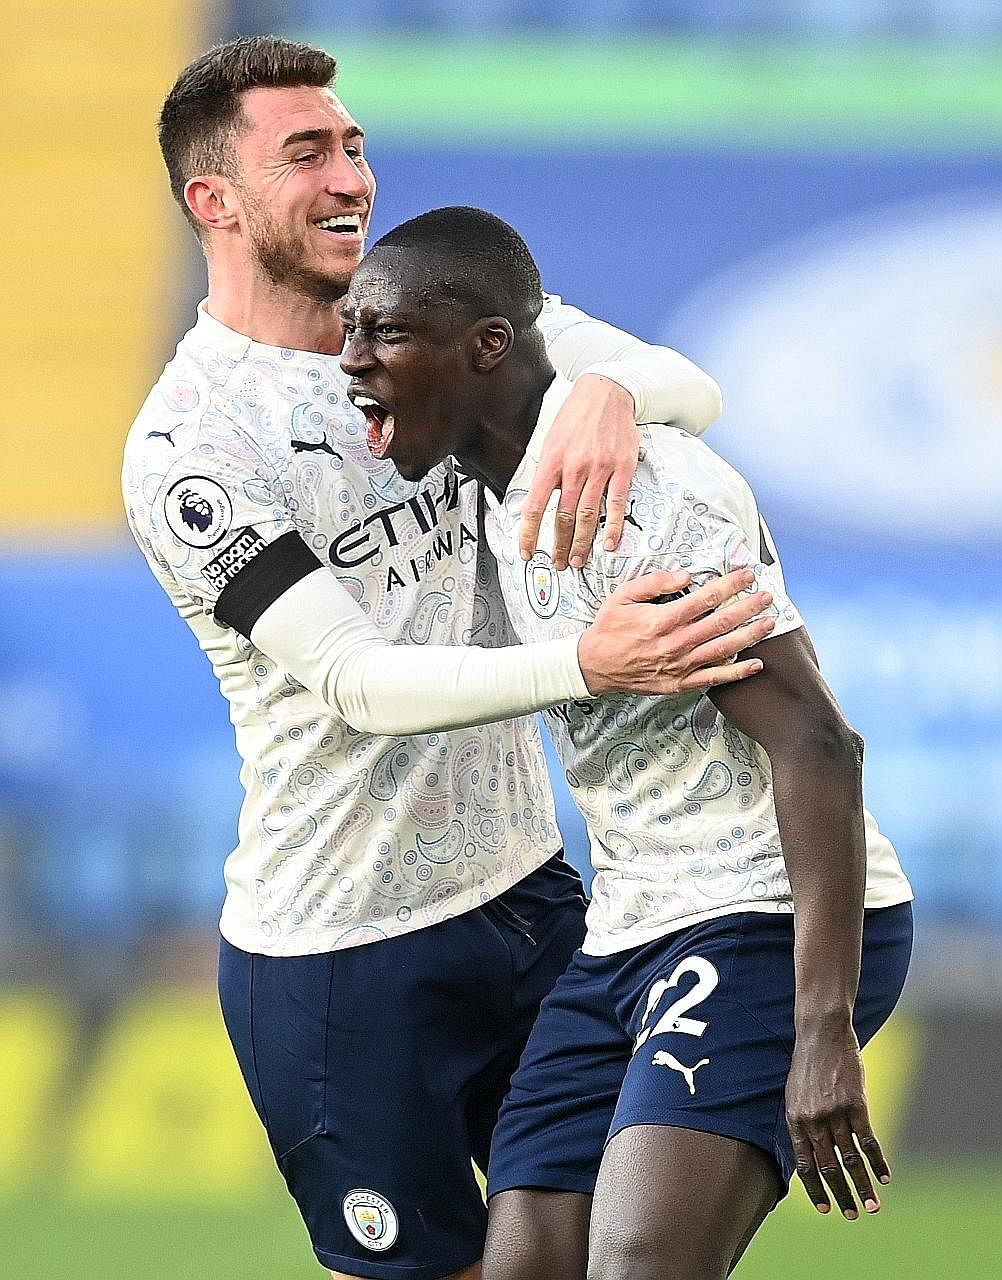 Manchester City's Benjamin Mendy (far right) celebrating with fellow defender Aymeric Laporte after scoring the opener in their 2-0 win at Leicester on Saturday. The Frenchmen were both absent from Didier Deschamps' Les Bleus squad for World Cup qual